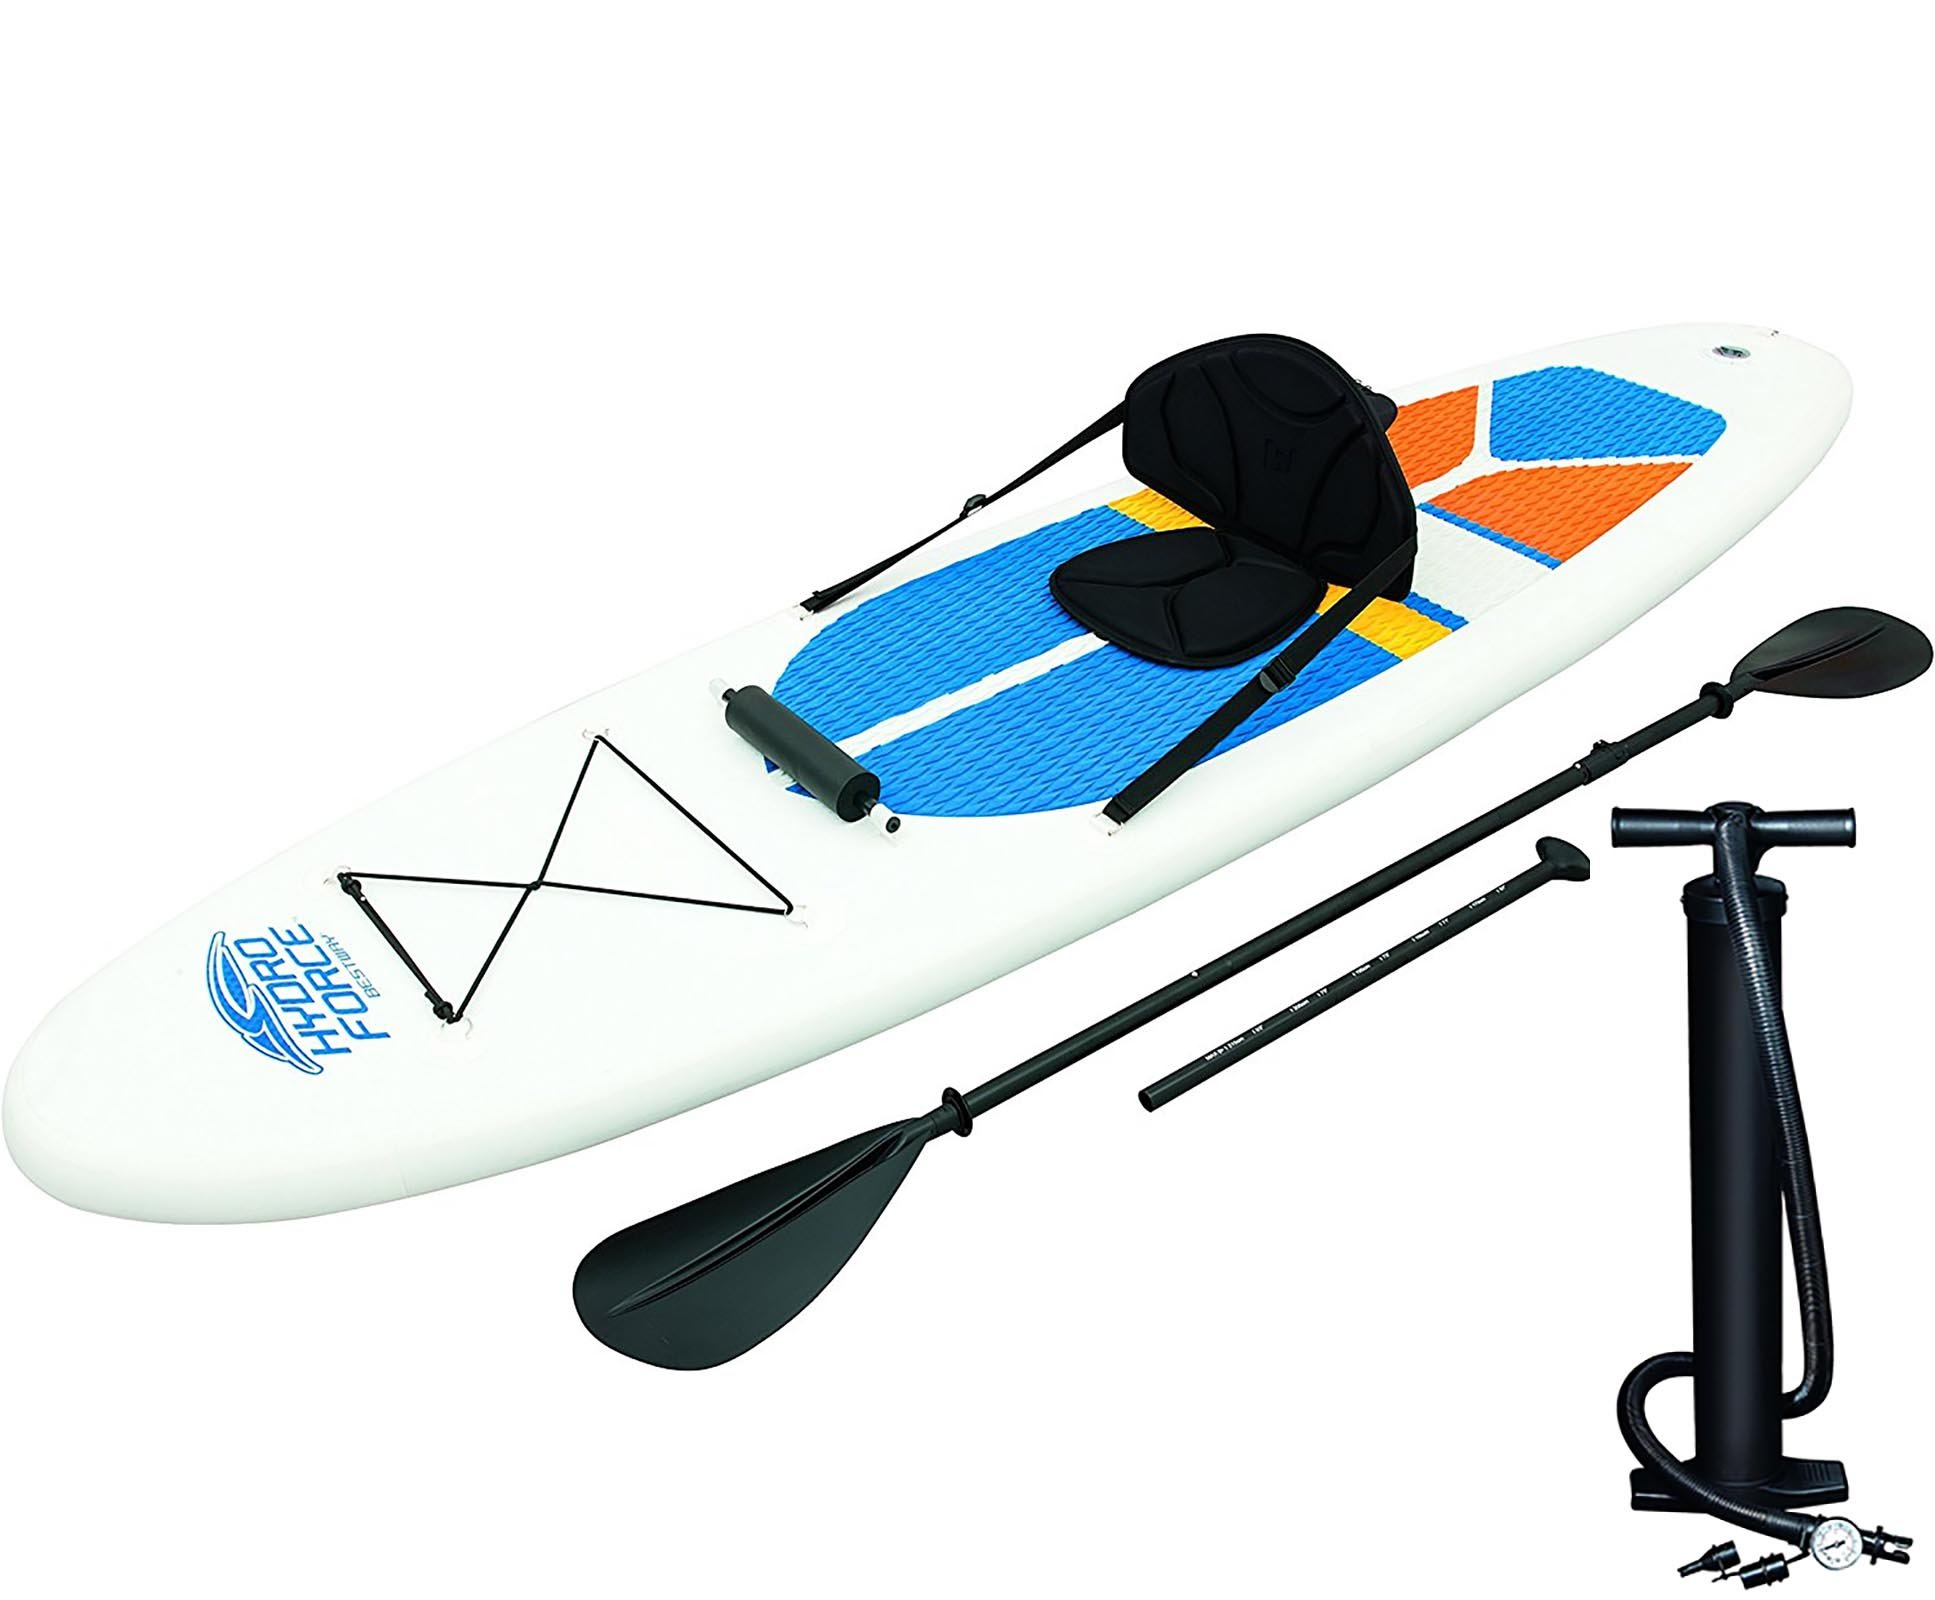 HydroForce White Cap Inflatable Stand Up Paddleboard SUP and Kayak 10' by Bestway (Image #9)